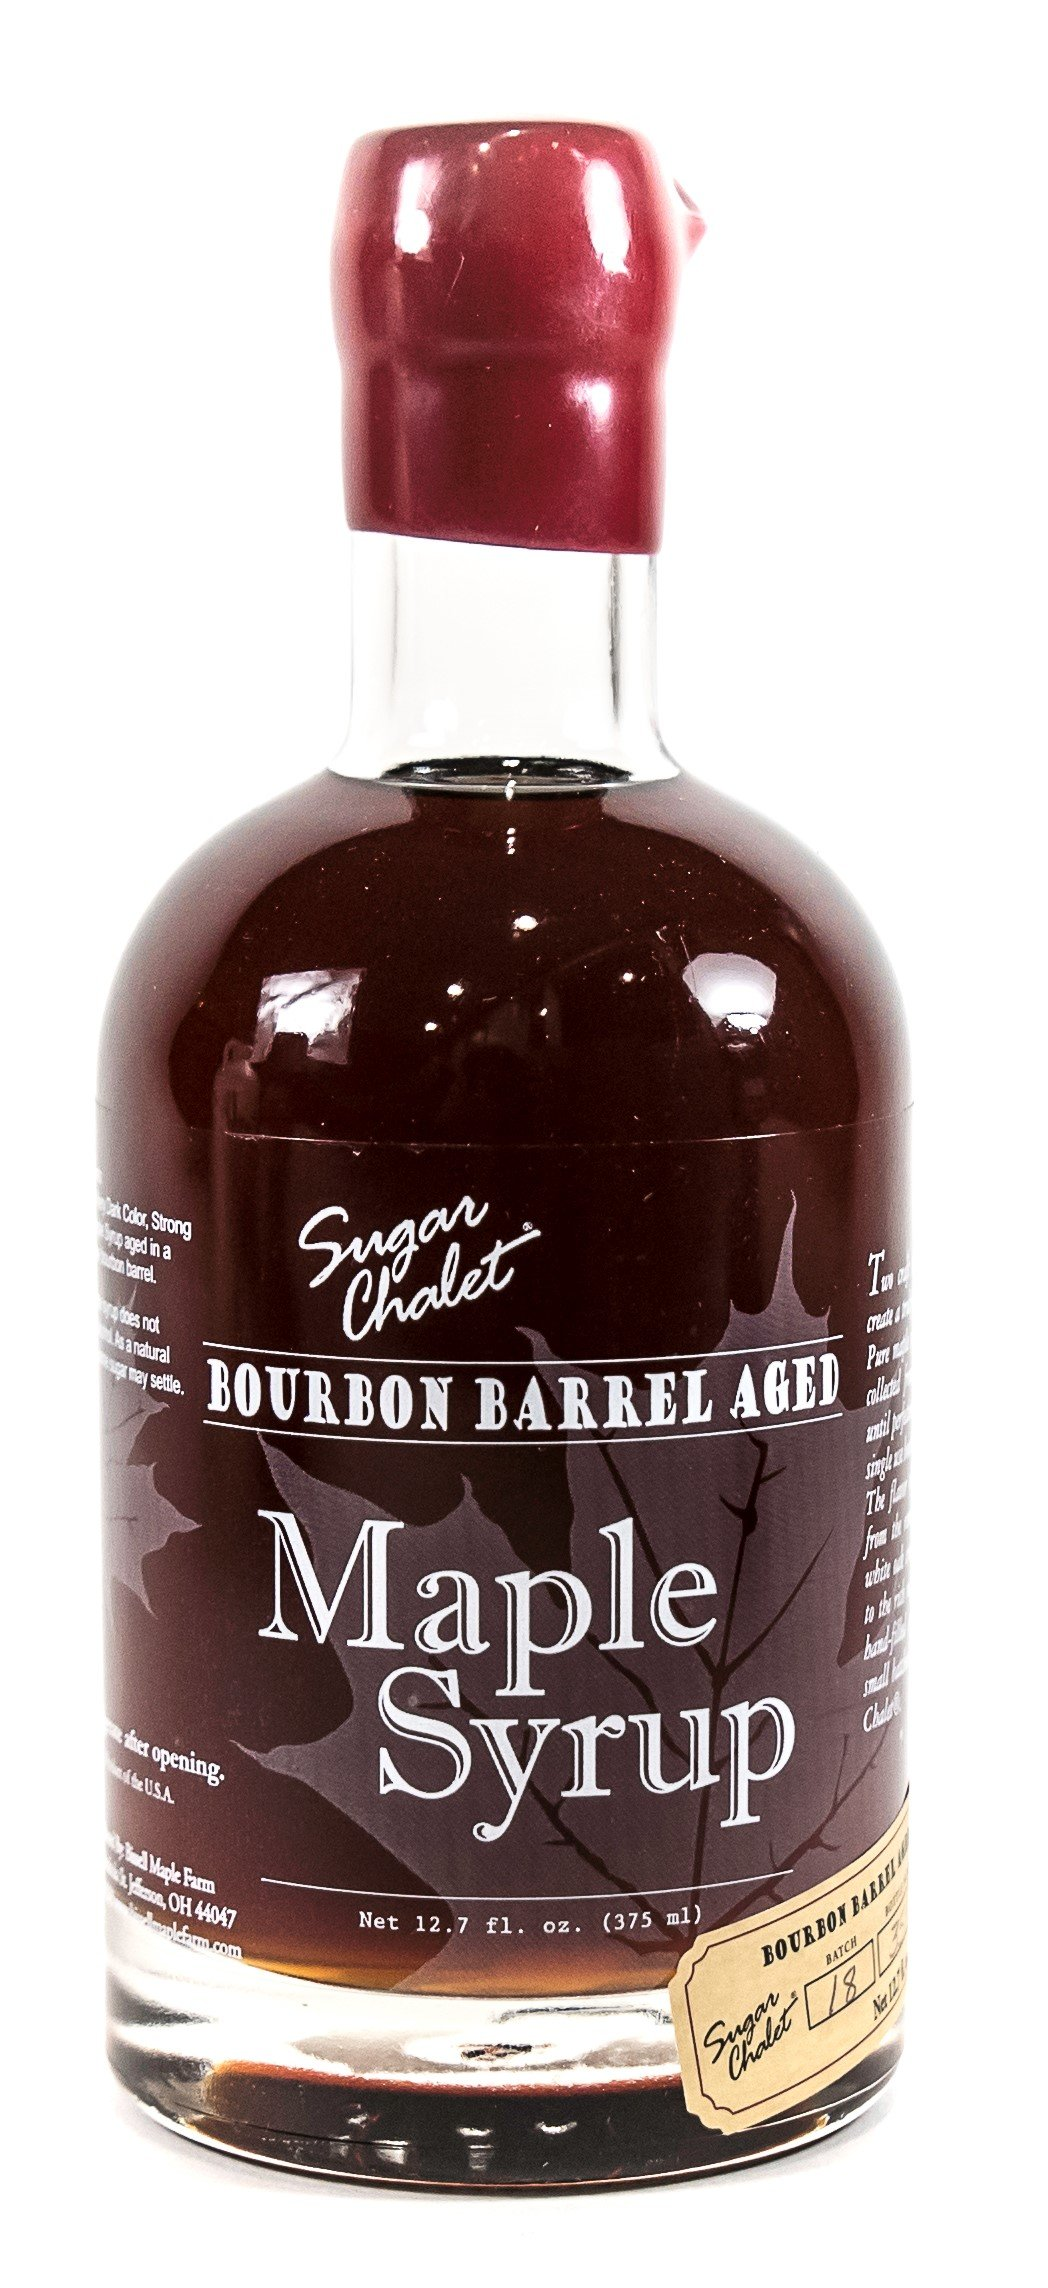 Bissell Maple Farm Grade A Maple Syrup, Bourbon Barrel Aged